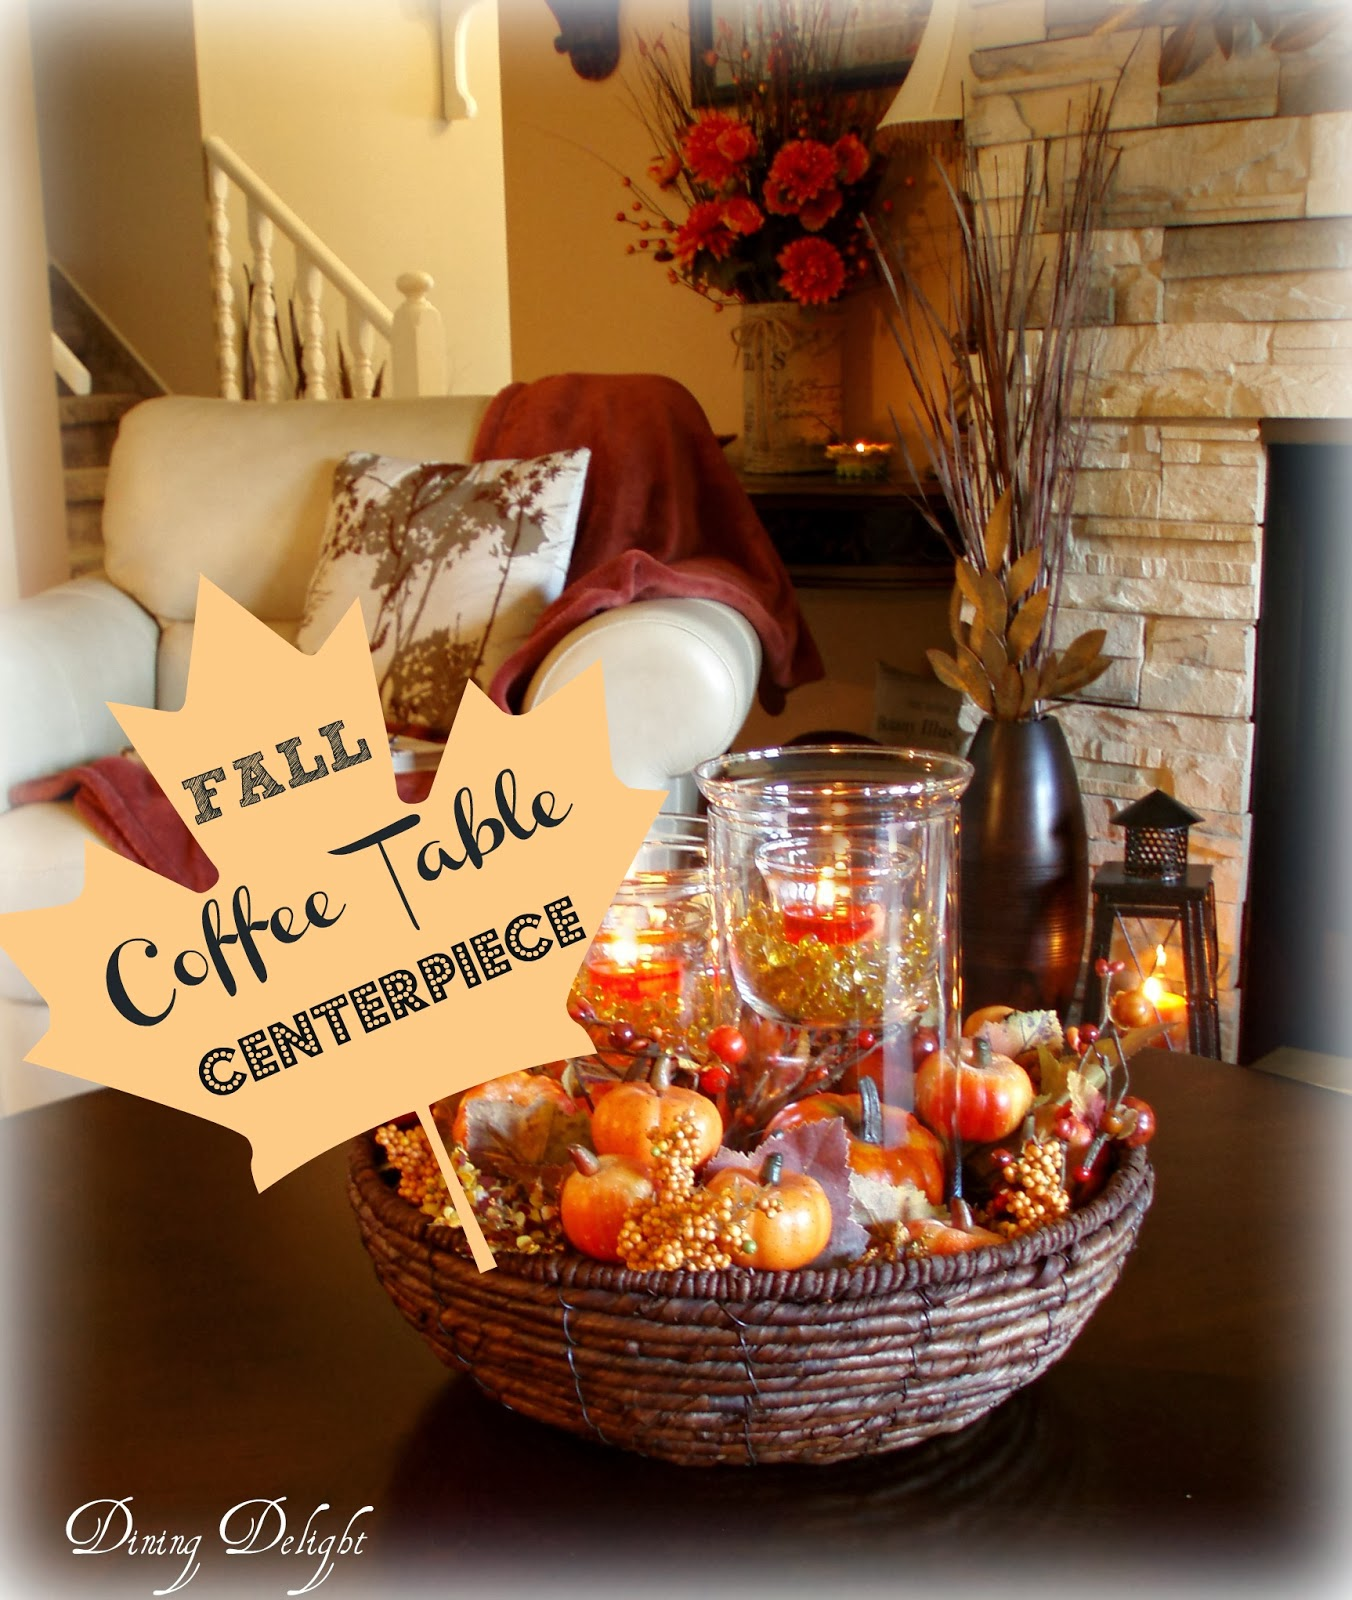 Centerpiece Ideas For Coffee Table: Dining Delight: Fall Coffee Table Centerpiece